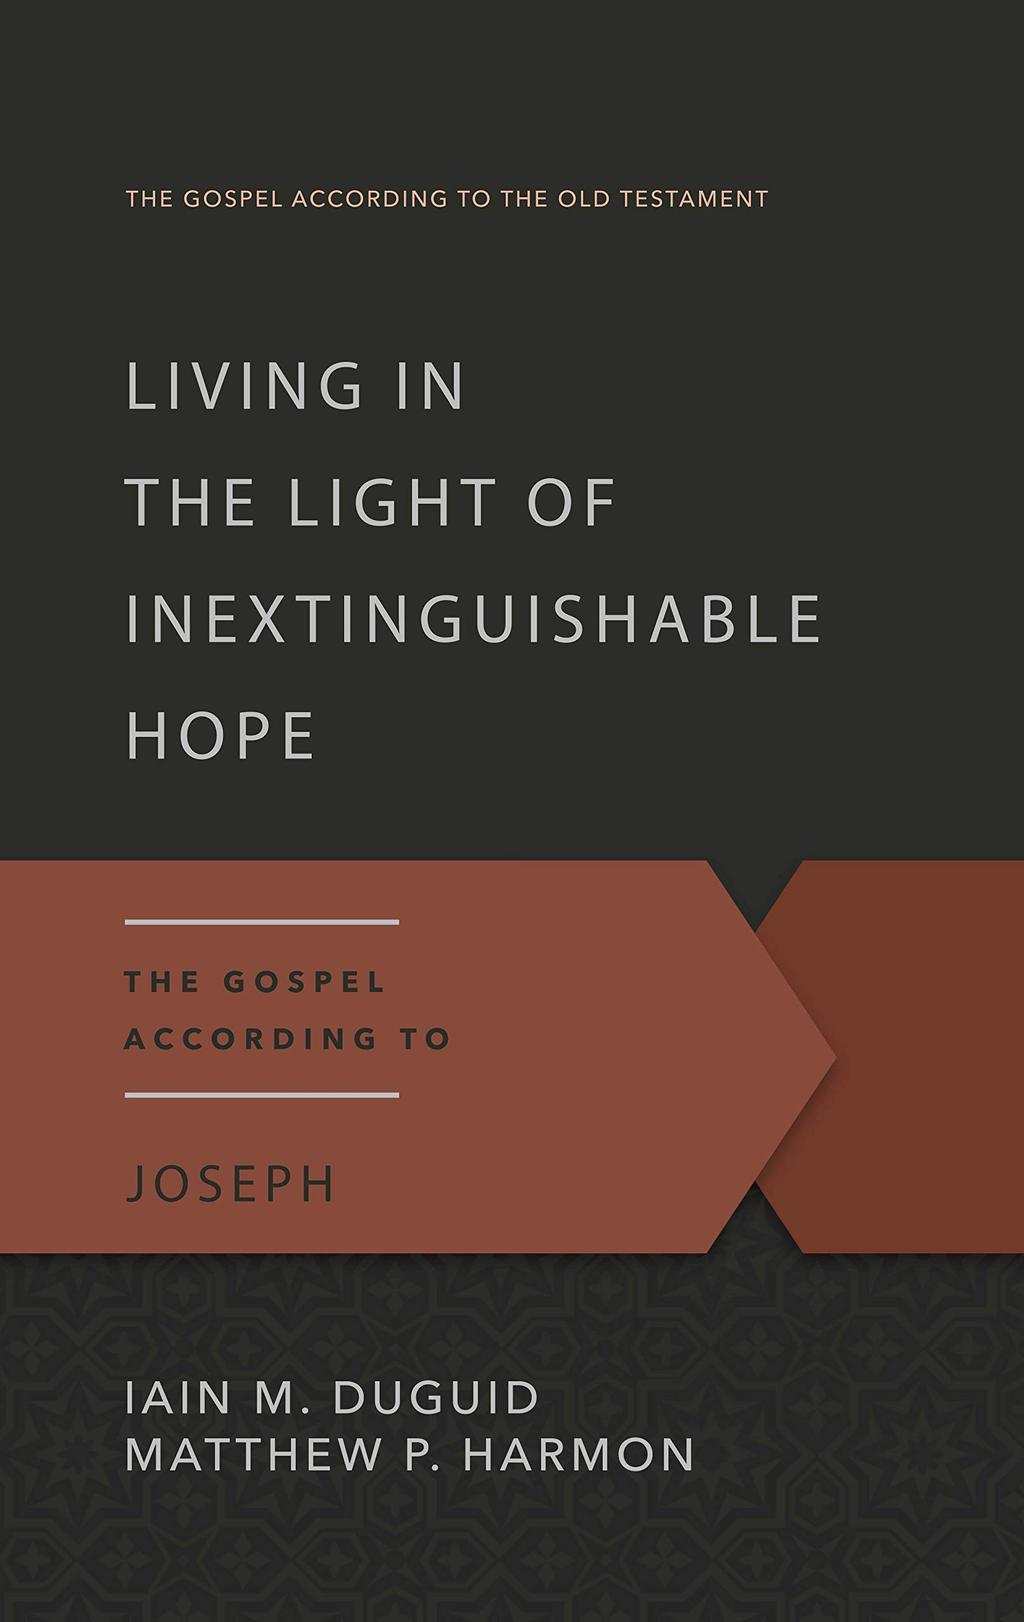 Living in the Light of Inextinguishable Hope